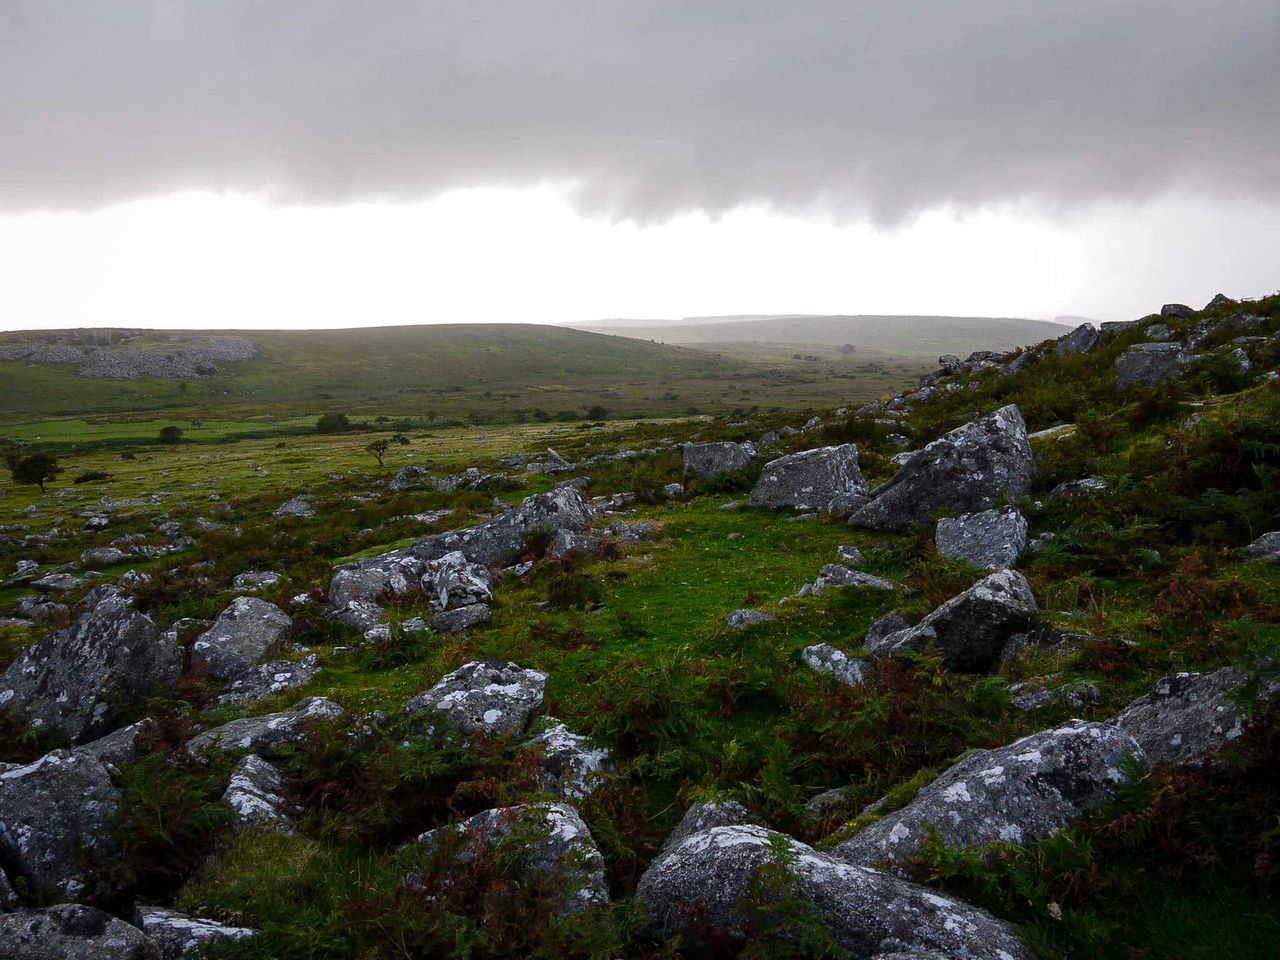 View Of Rocky Landscape Against Cloudy Sky